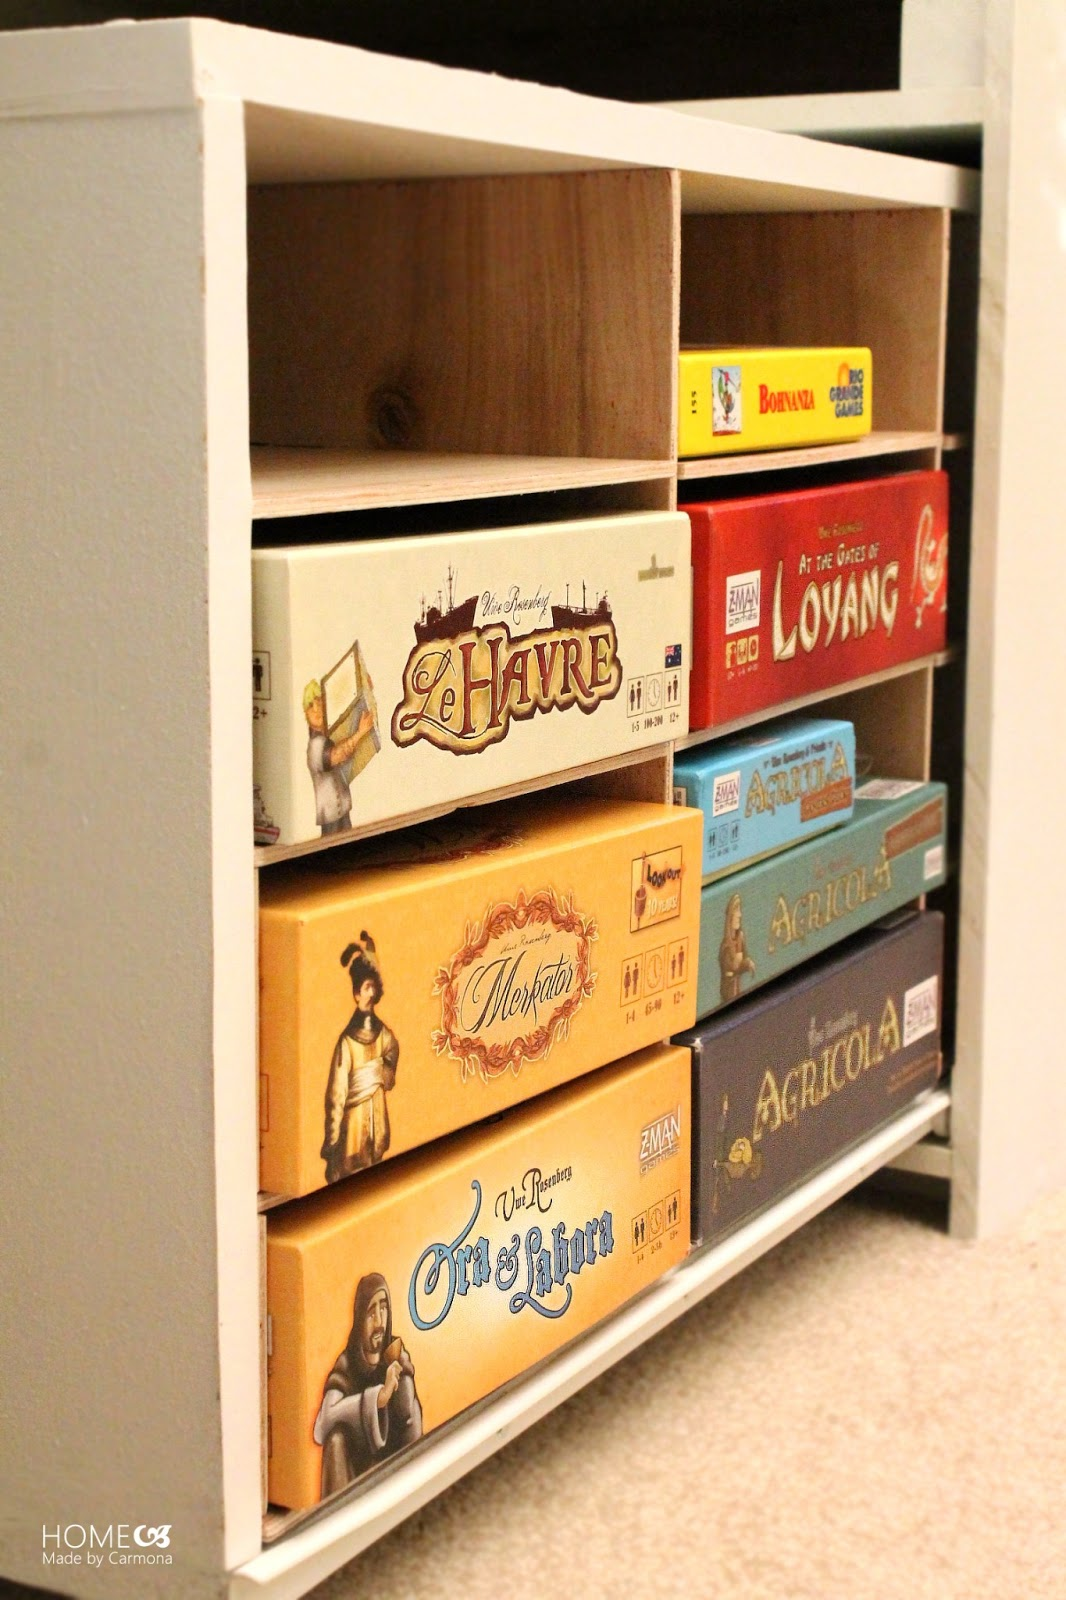 DIY Board Game Storage Unit | Home Made by Carmona